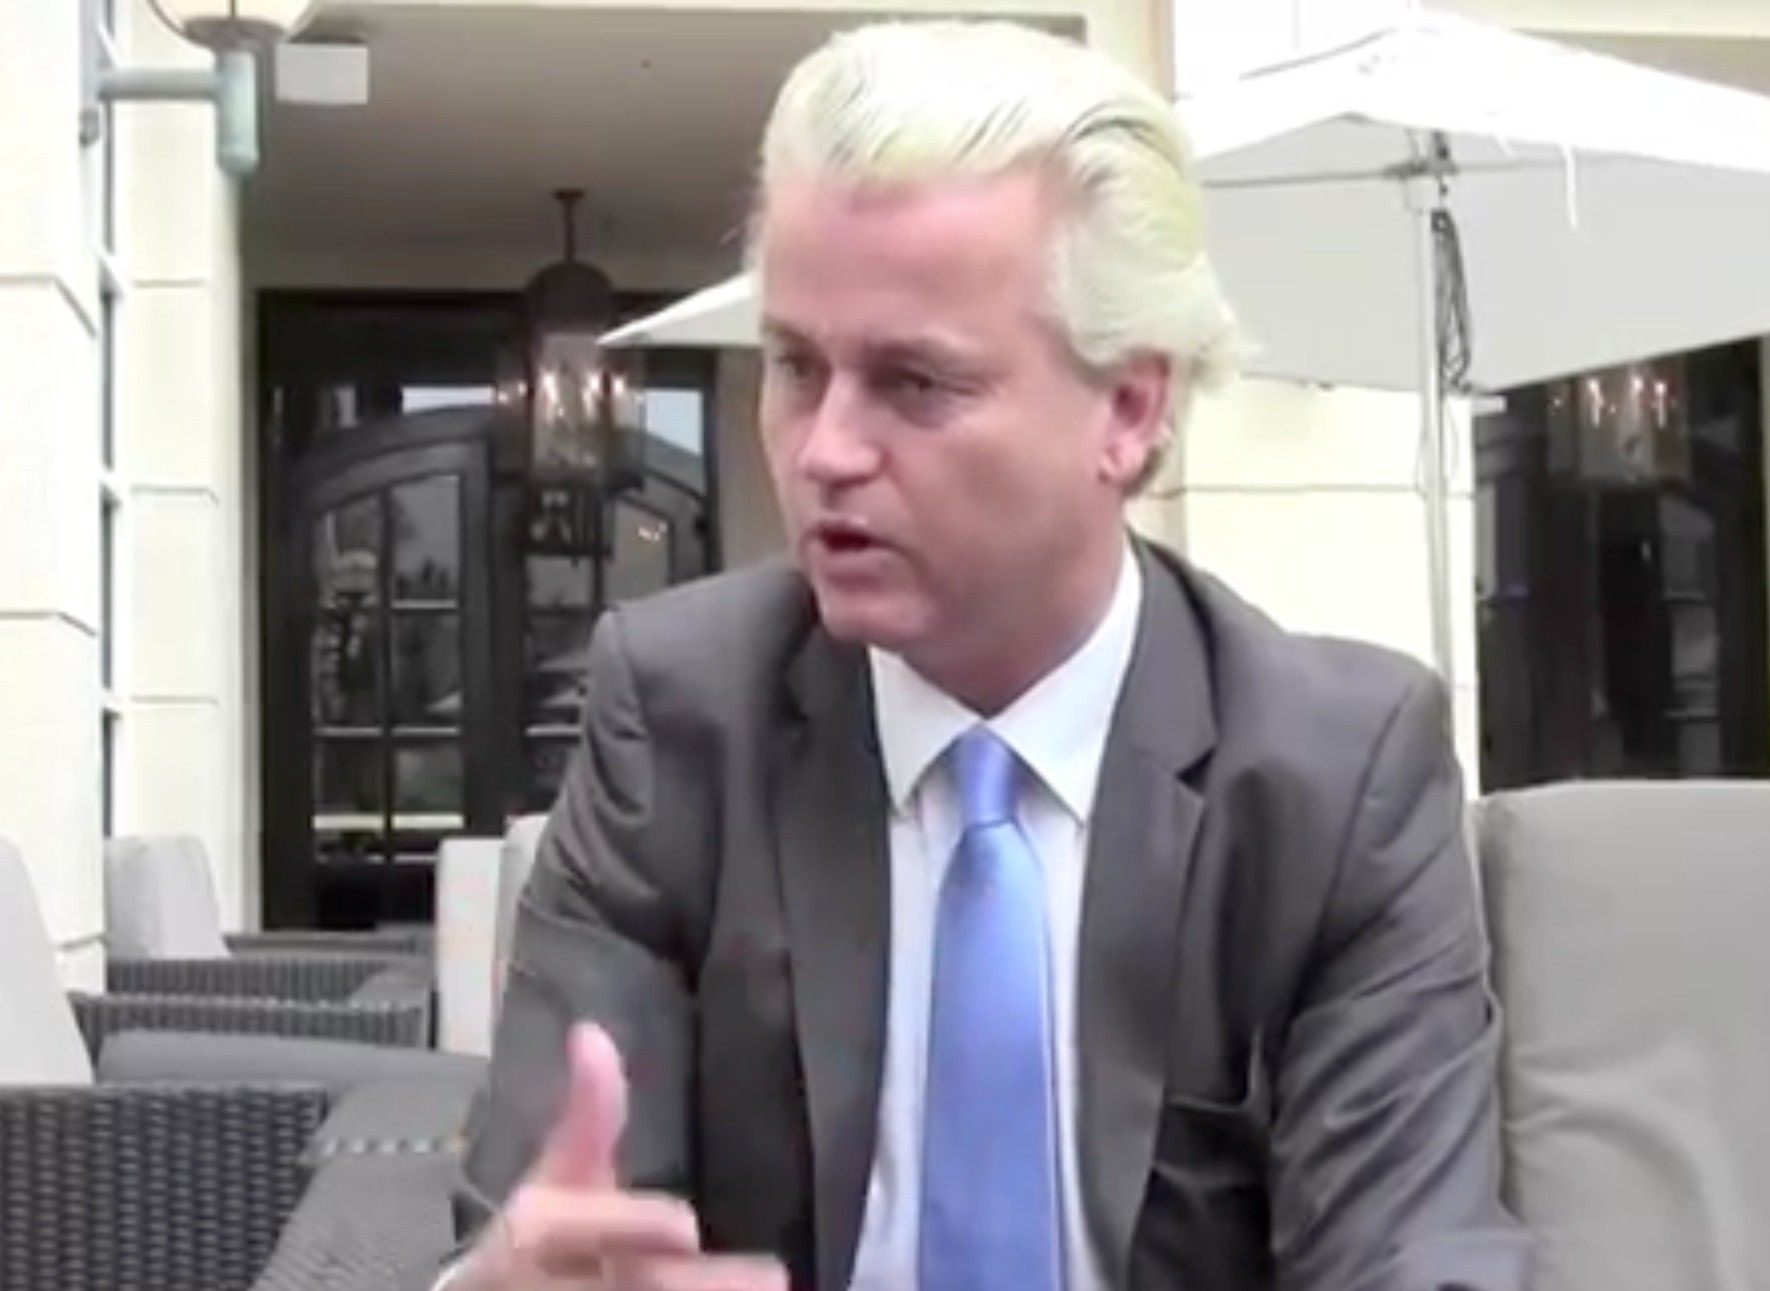 Interview: Geert Wilders and the 'Islamicization' of Europe